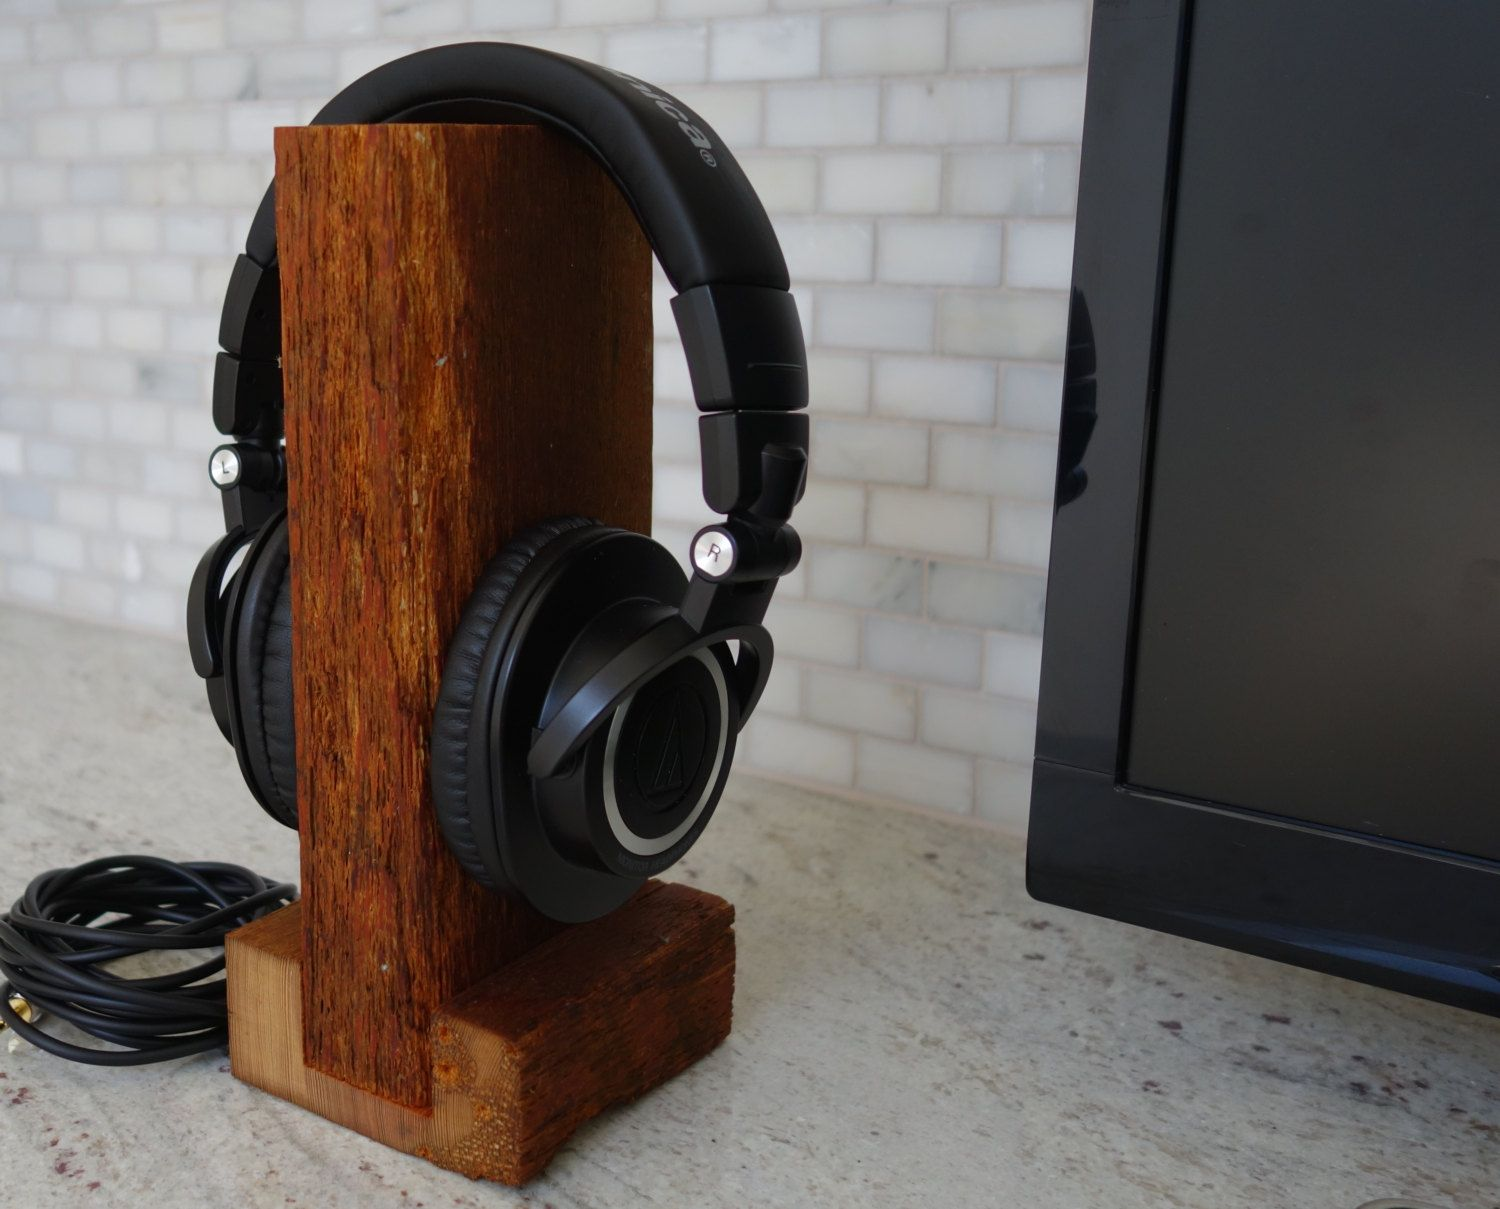 Headphones Holders Handmade Wood Headphone Stand The Rustic Unique Tech